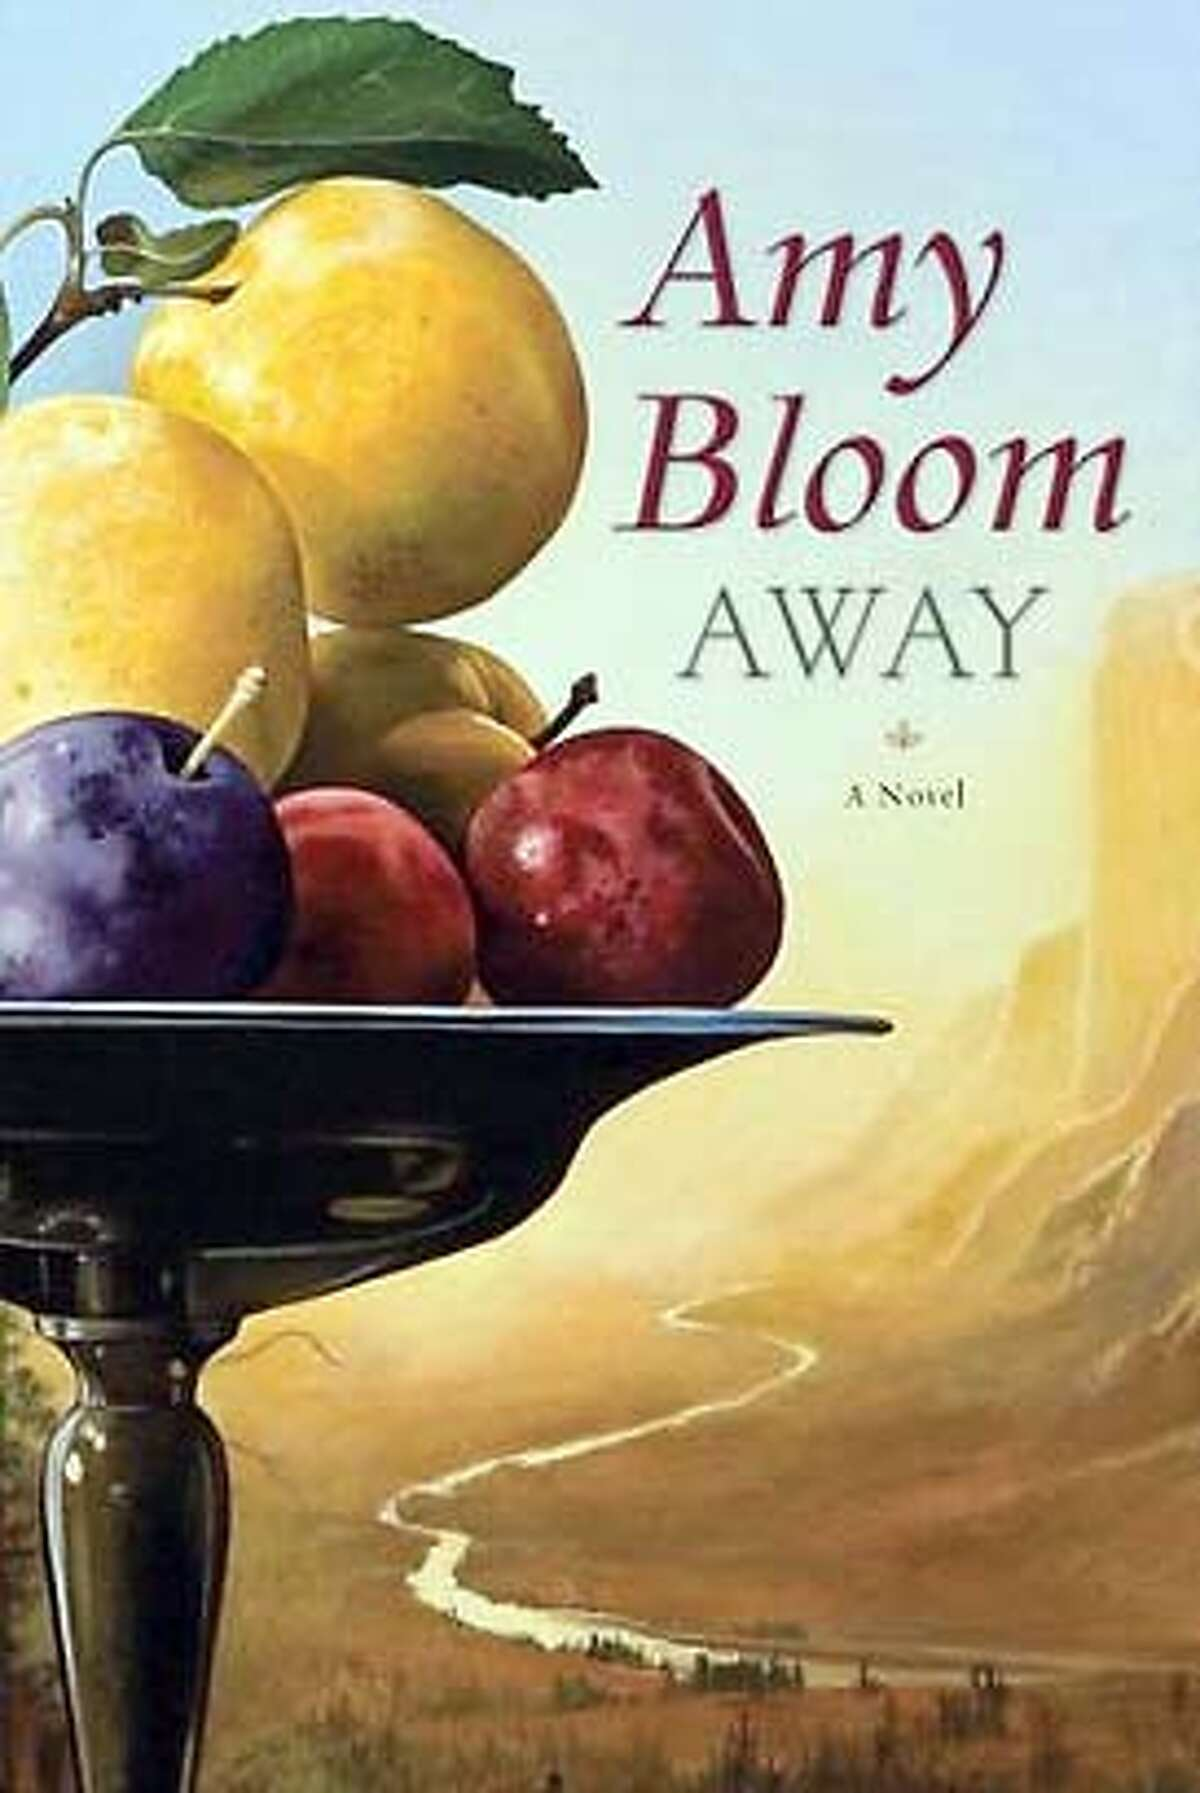 Amy Bloom. Away.